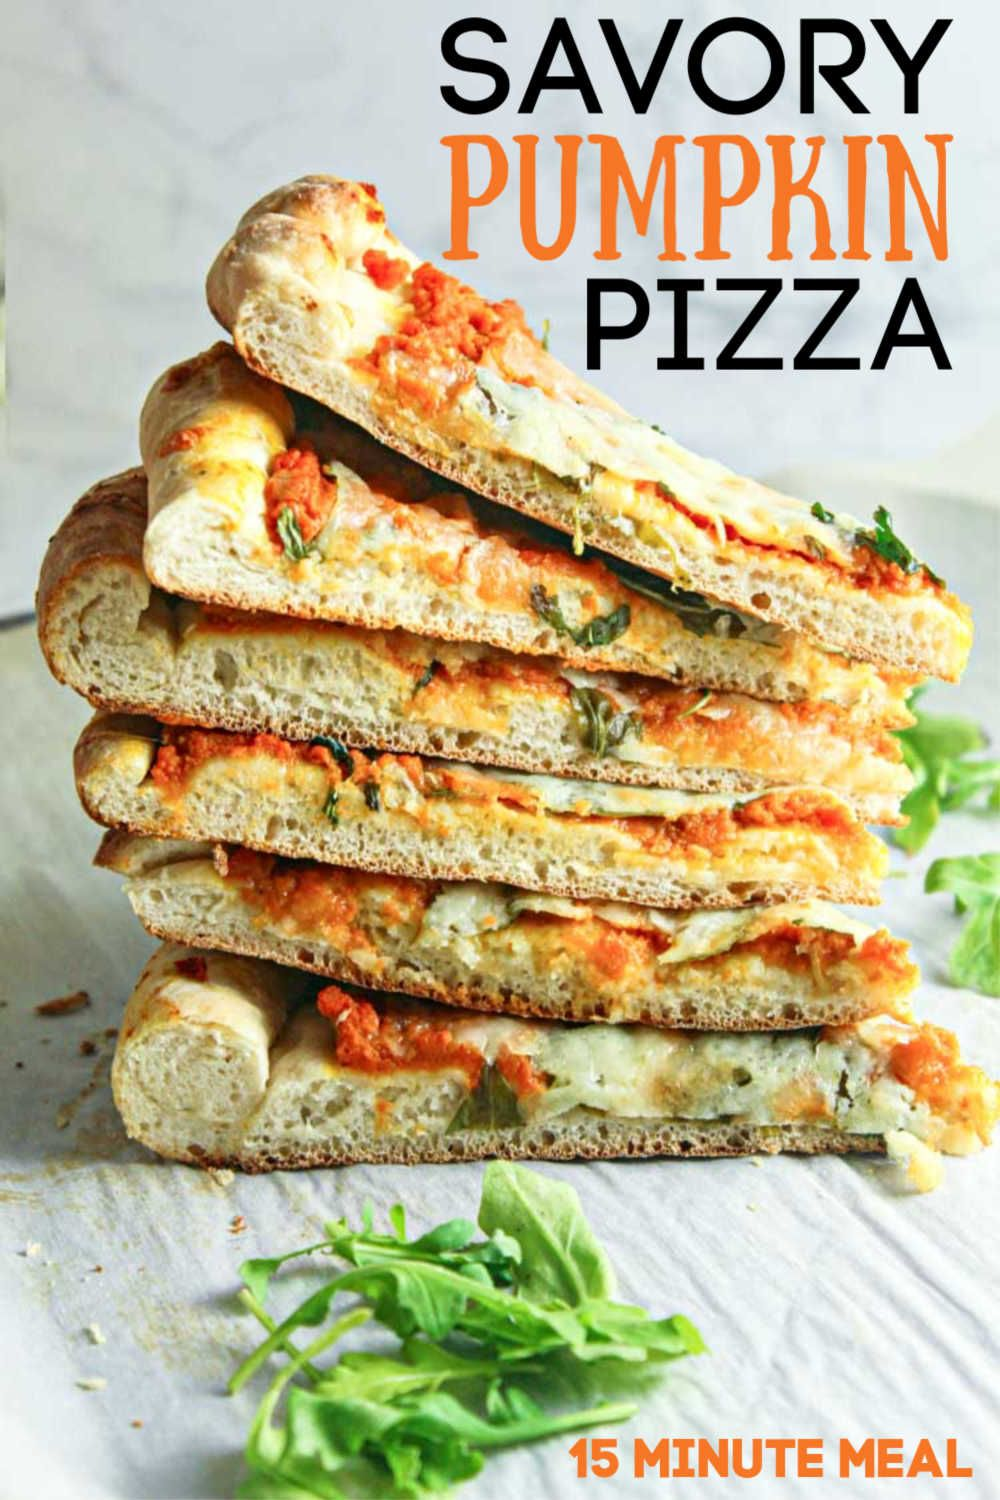 Savory Pumpkin Pizza Savory Pumpkin Pizza is the perfect homemade recipe for those cool autumn evenings when you dont want to eat out Baked in 15 minutes this grownup fla...